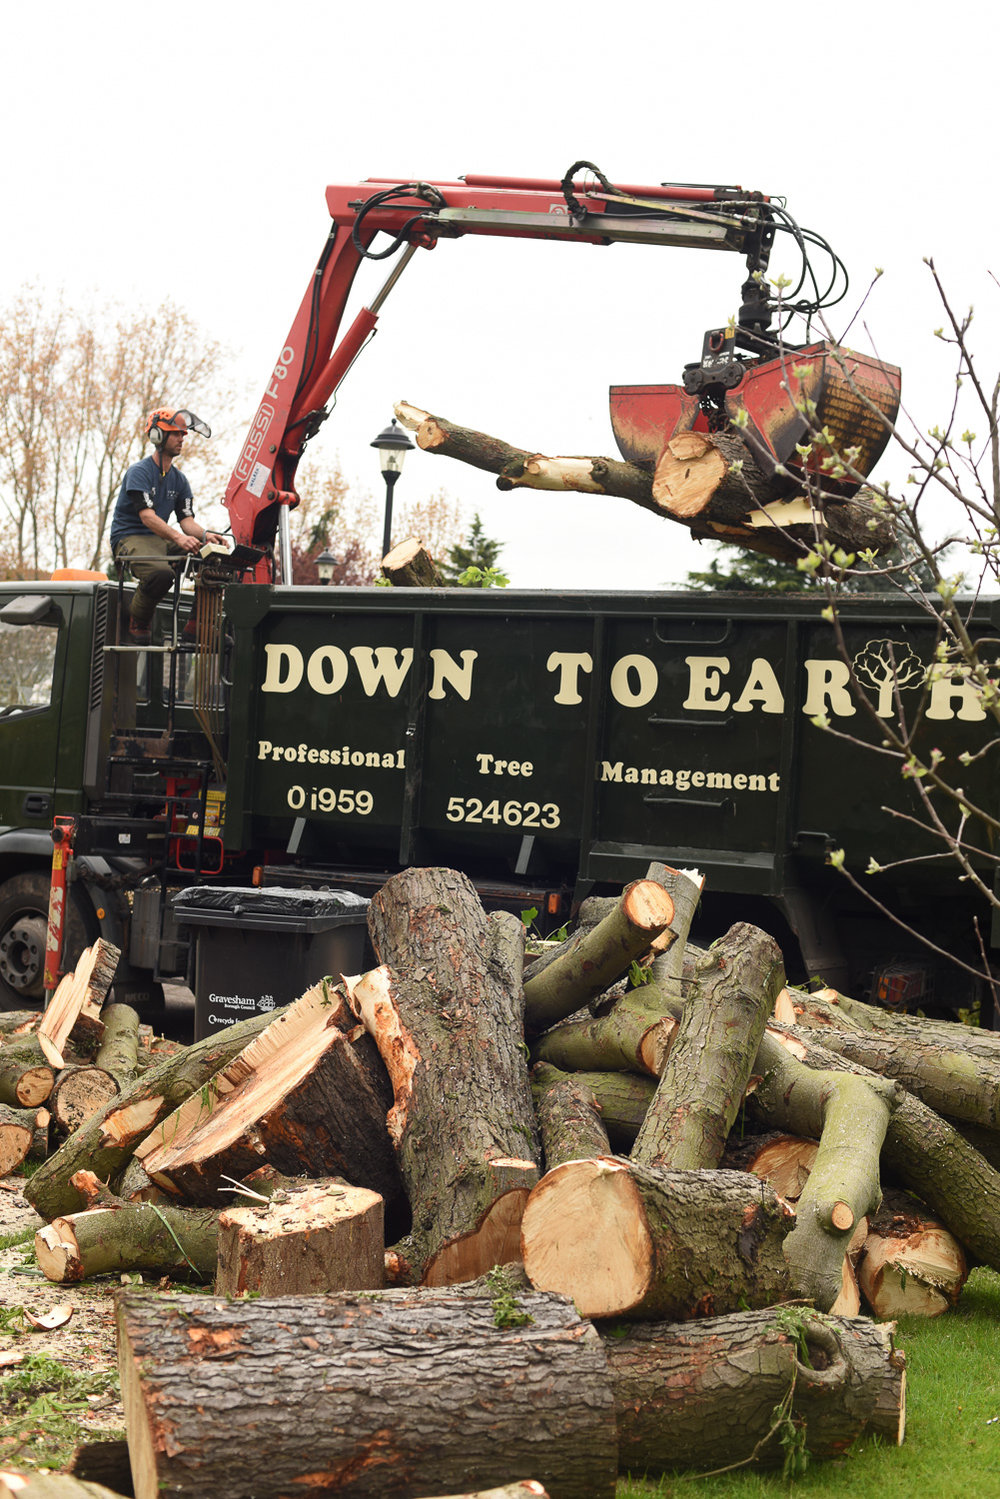 tonbridge-tree-management-services